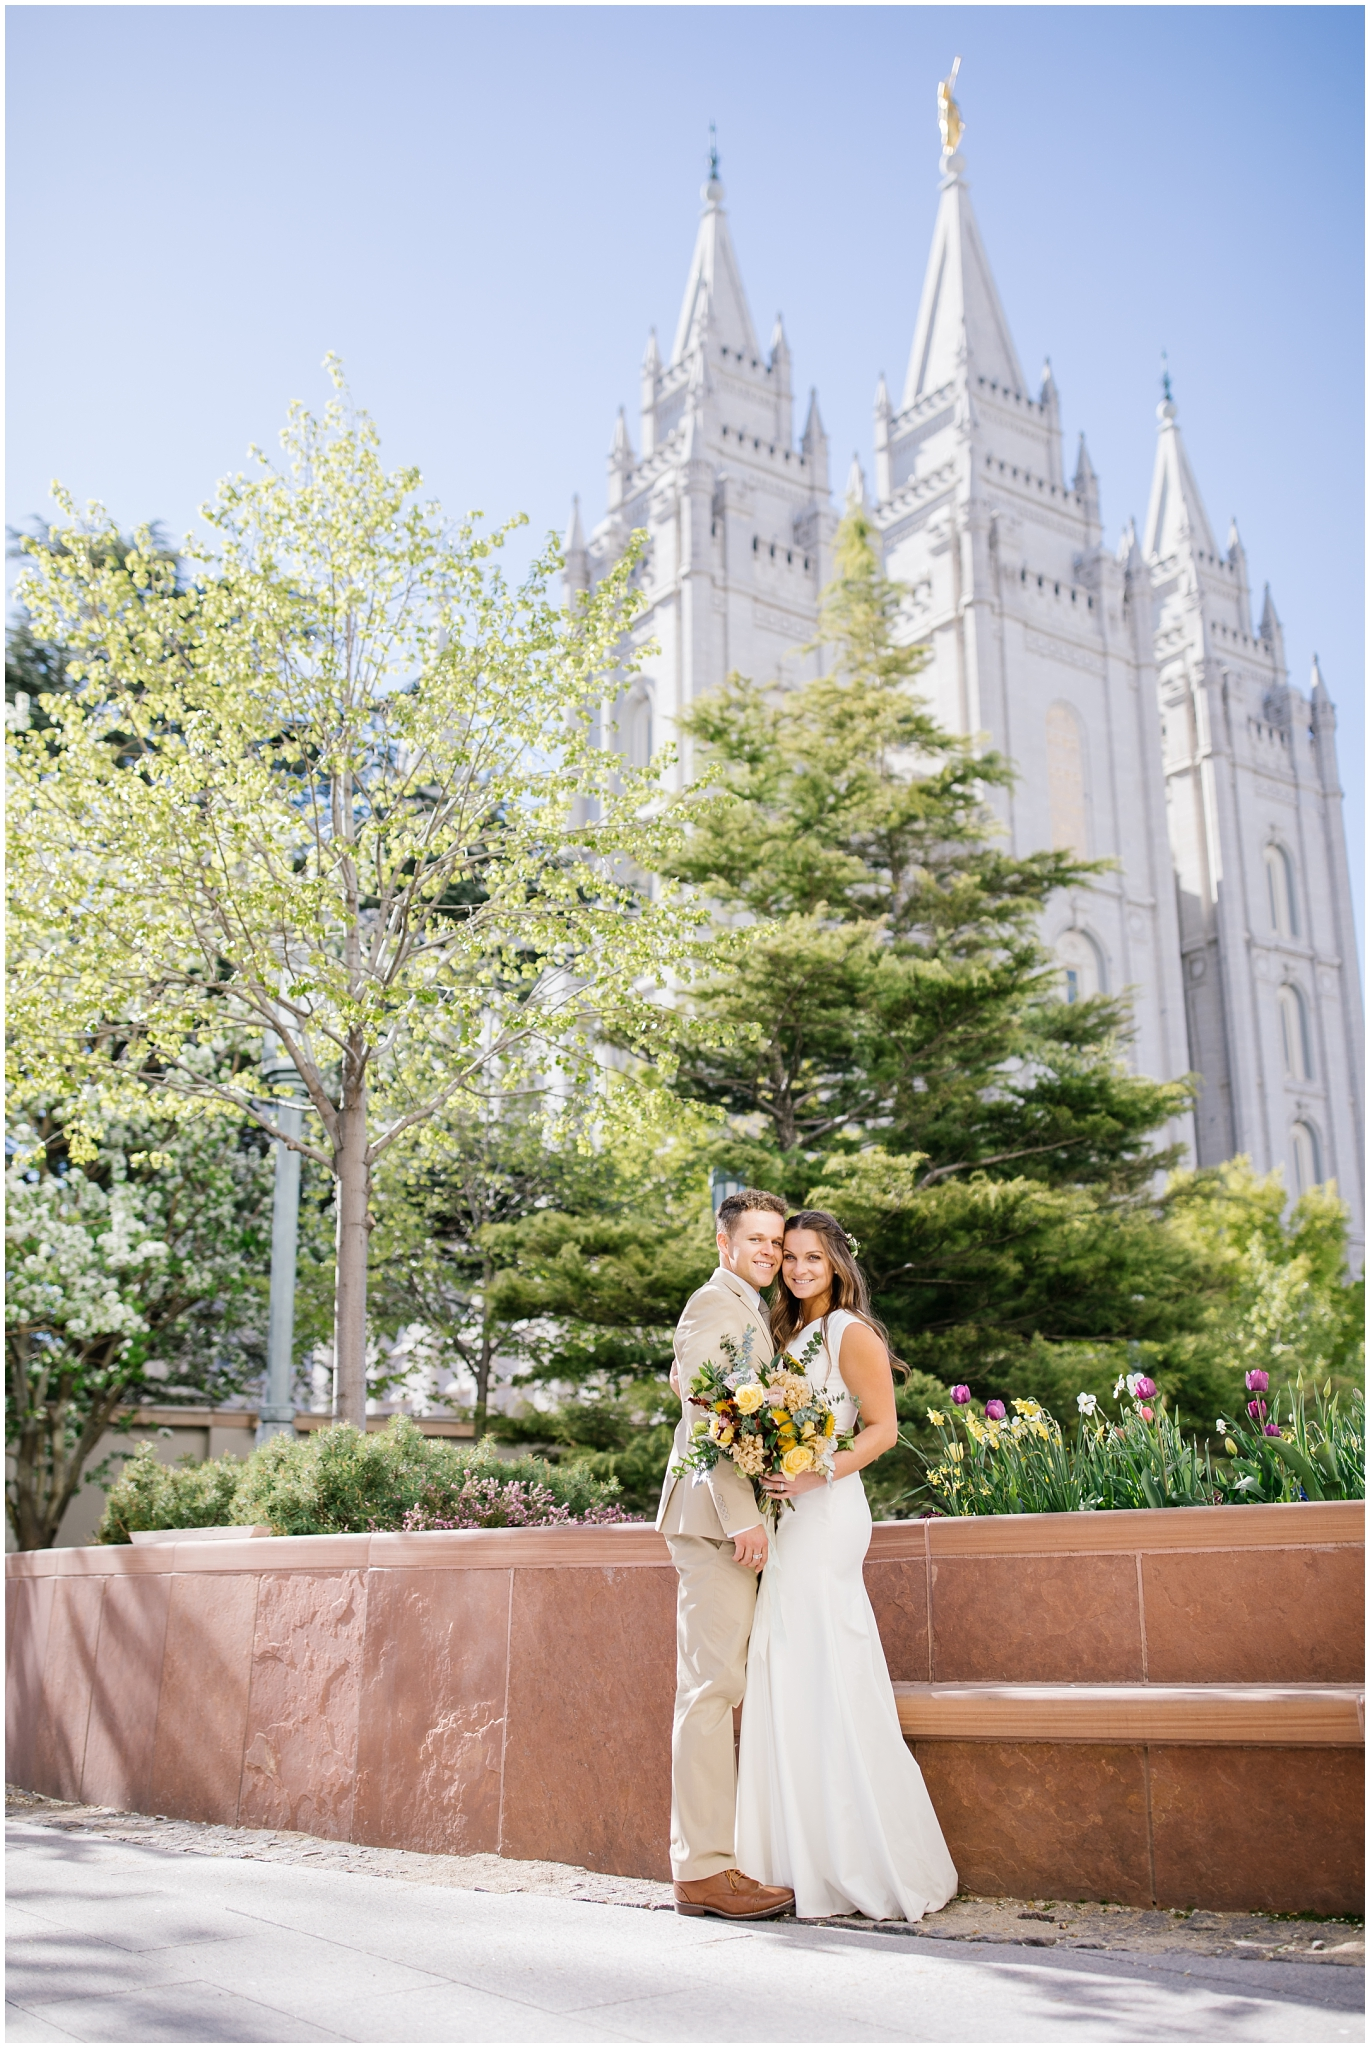 JC-Wedding-200_Lizzie-B-Imagery-Utah-Wedding-Photographer-Park-City-Salt-Lake-City-Temple-Joseph-Smith-Memorial-Building-Empire-Room.jpg